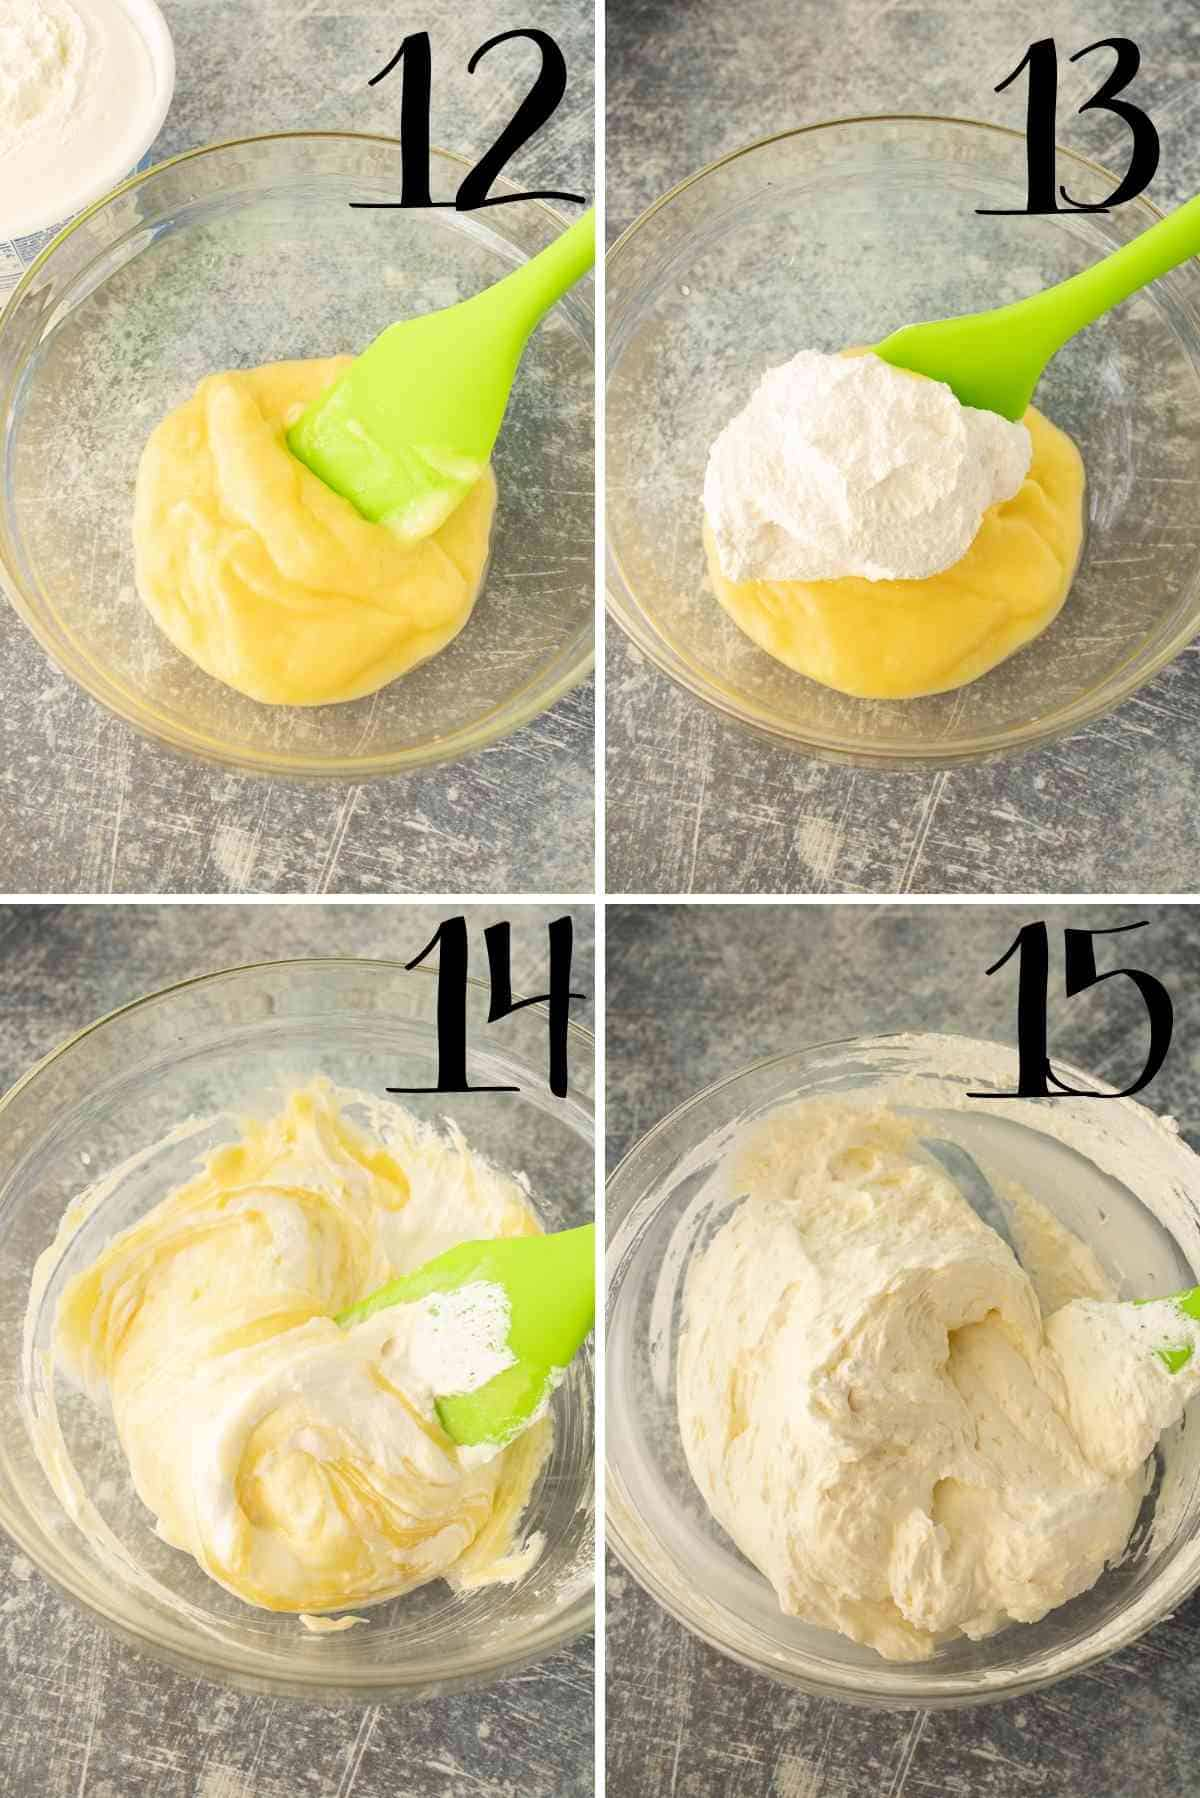 Fold whipped cream into chilled lemon curd.